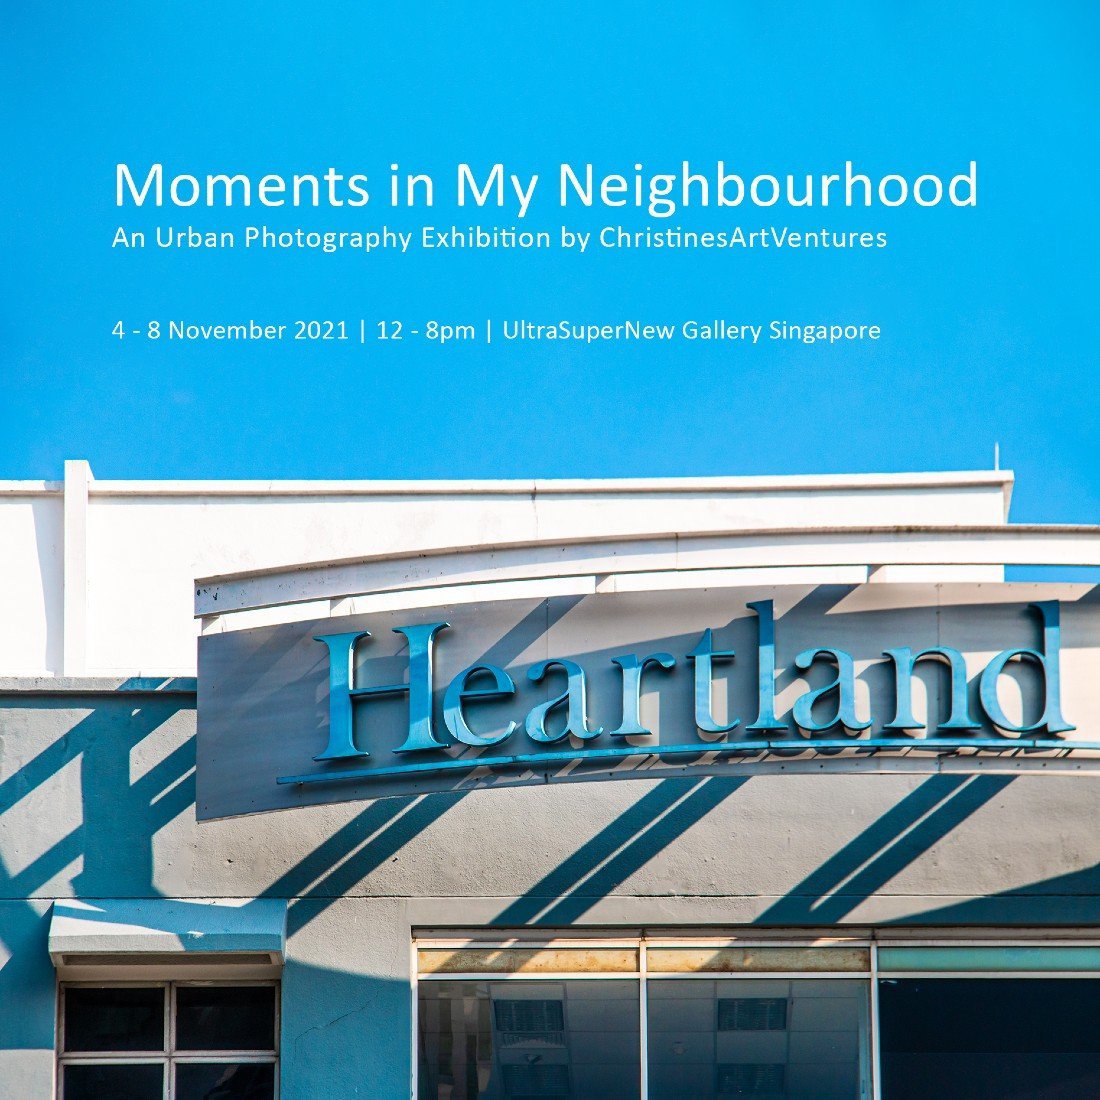 Moments in My Neighbourhood - An Urban Photography Exhibition by ChristinesArtVentures